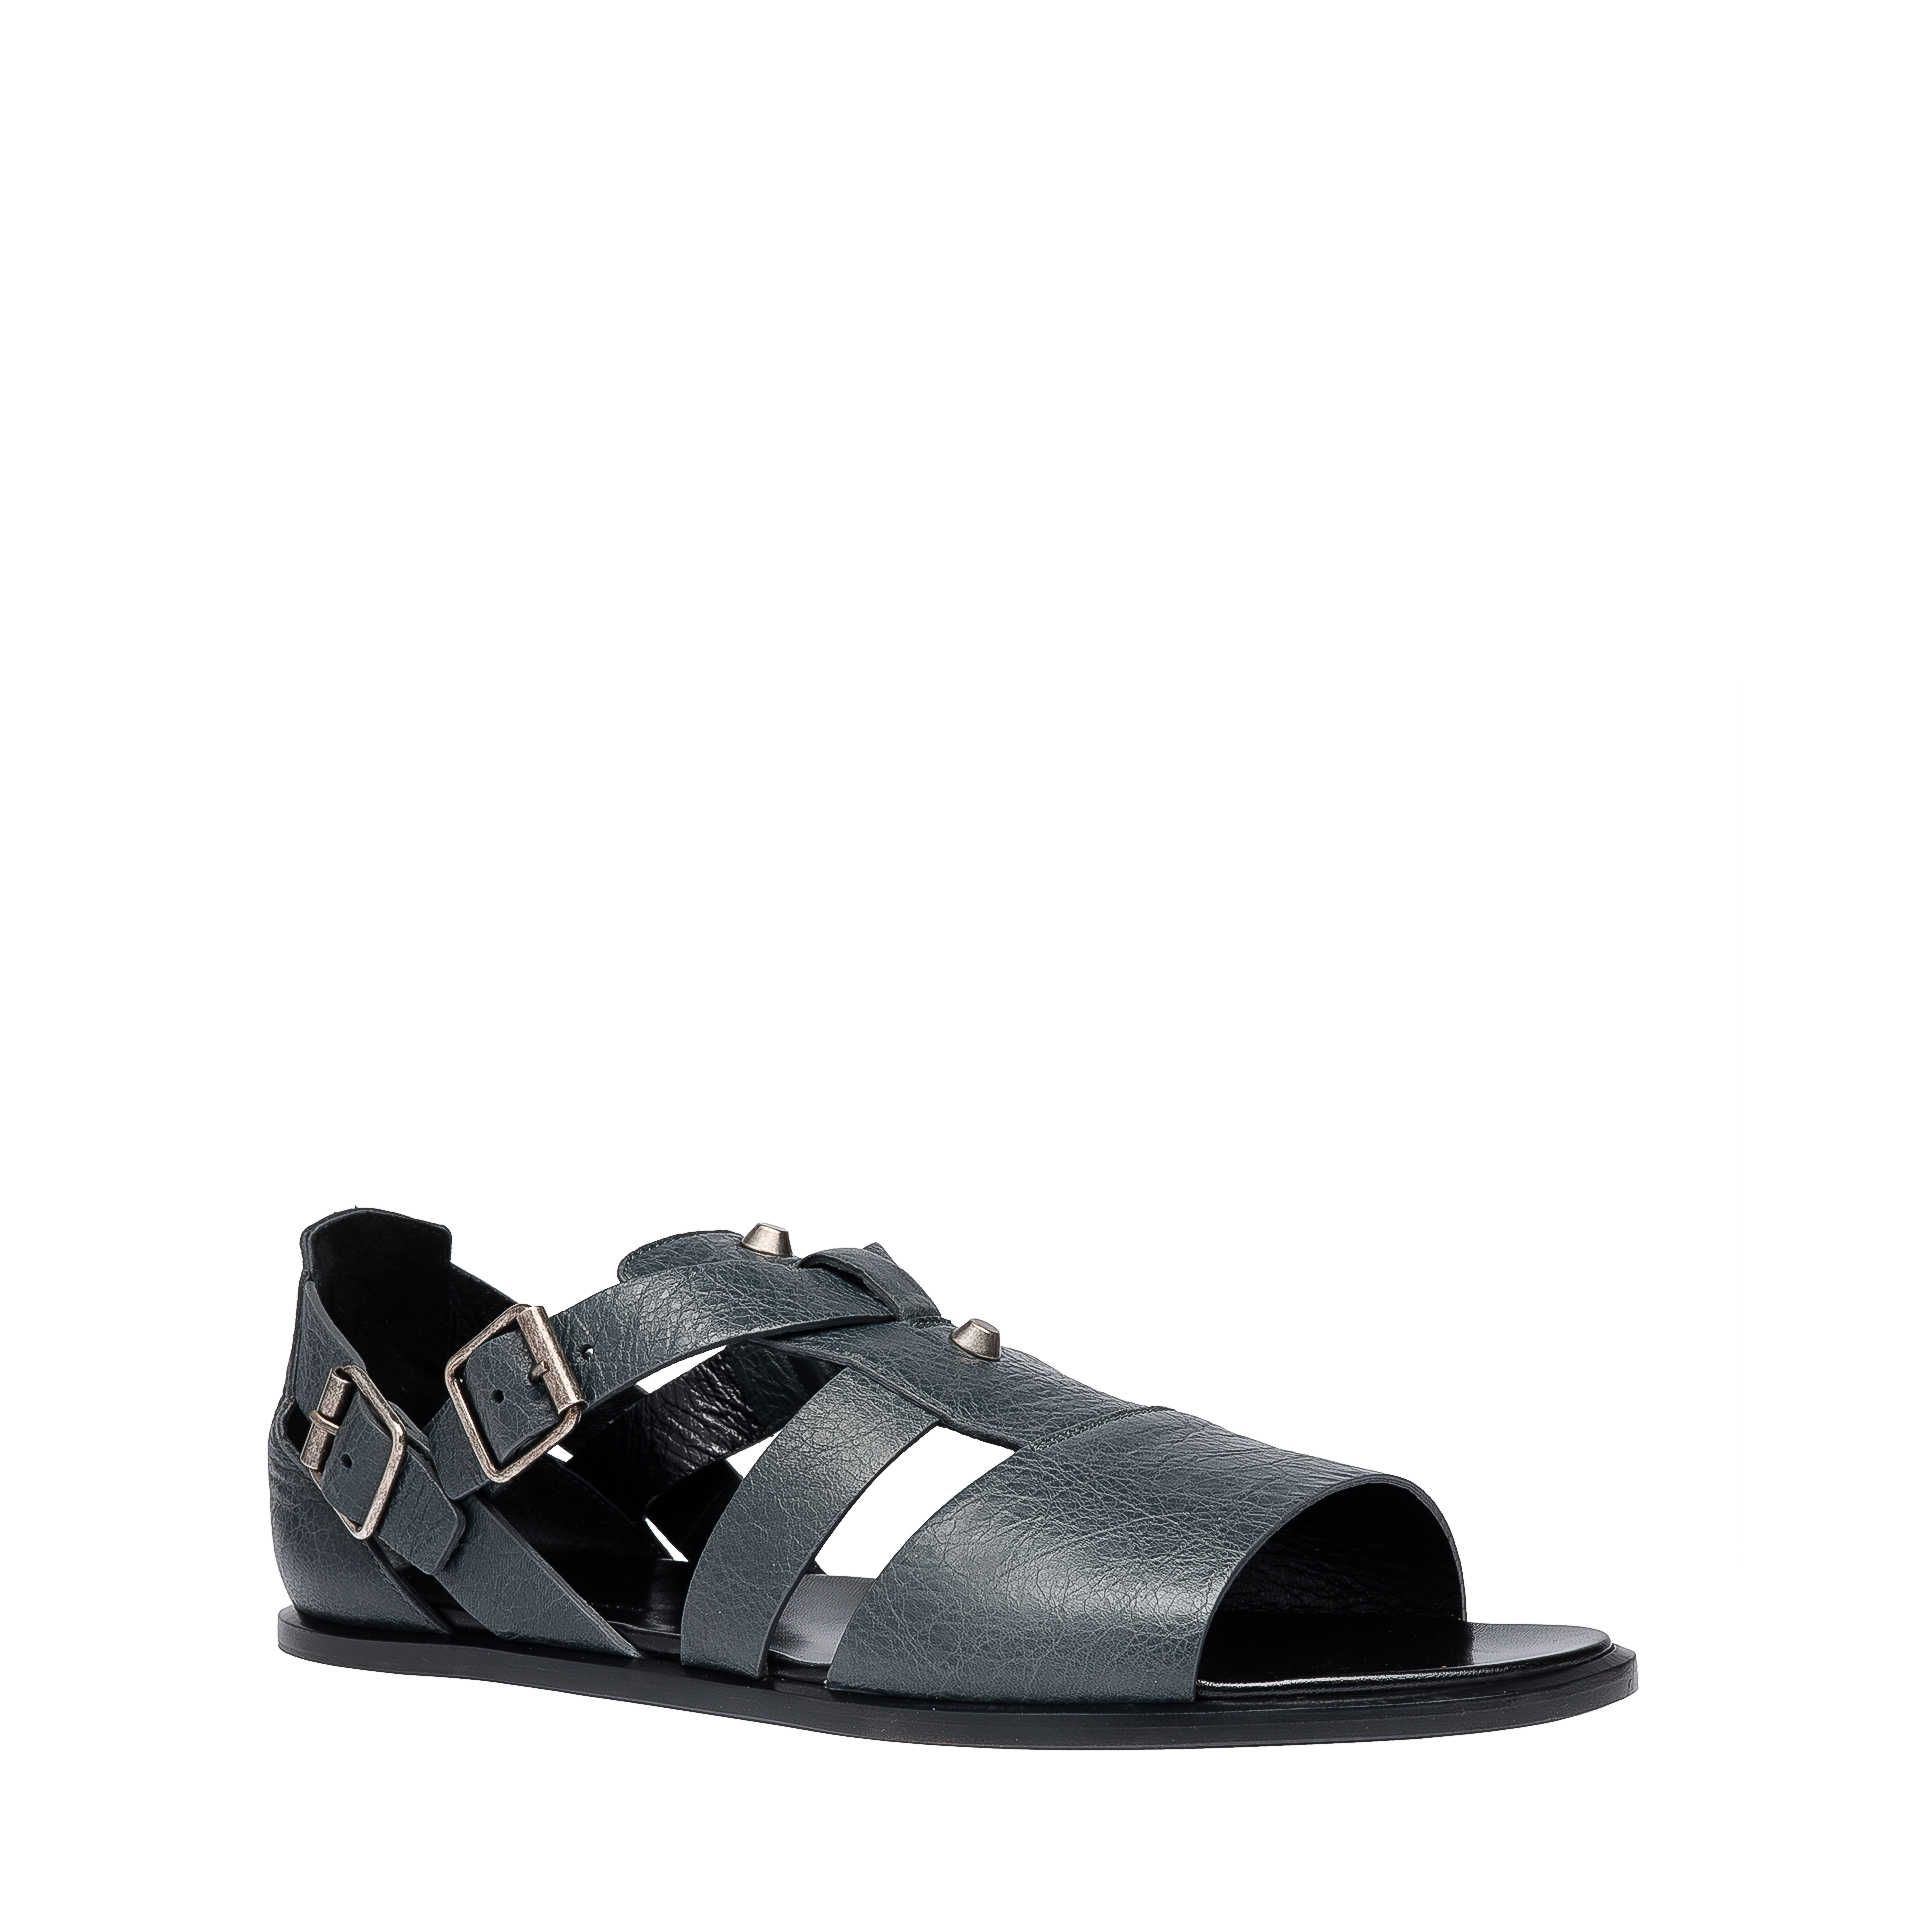 Anthracite Balenciaga Arena Sandals Men S Shoes